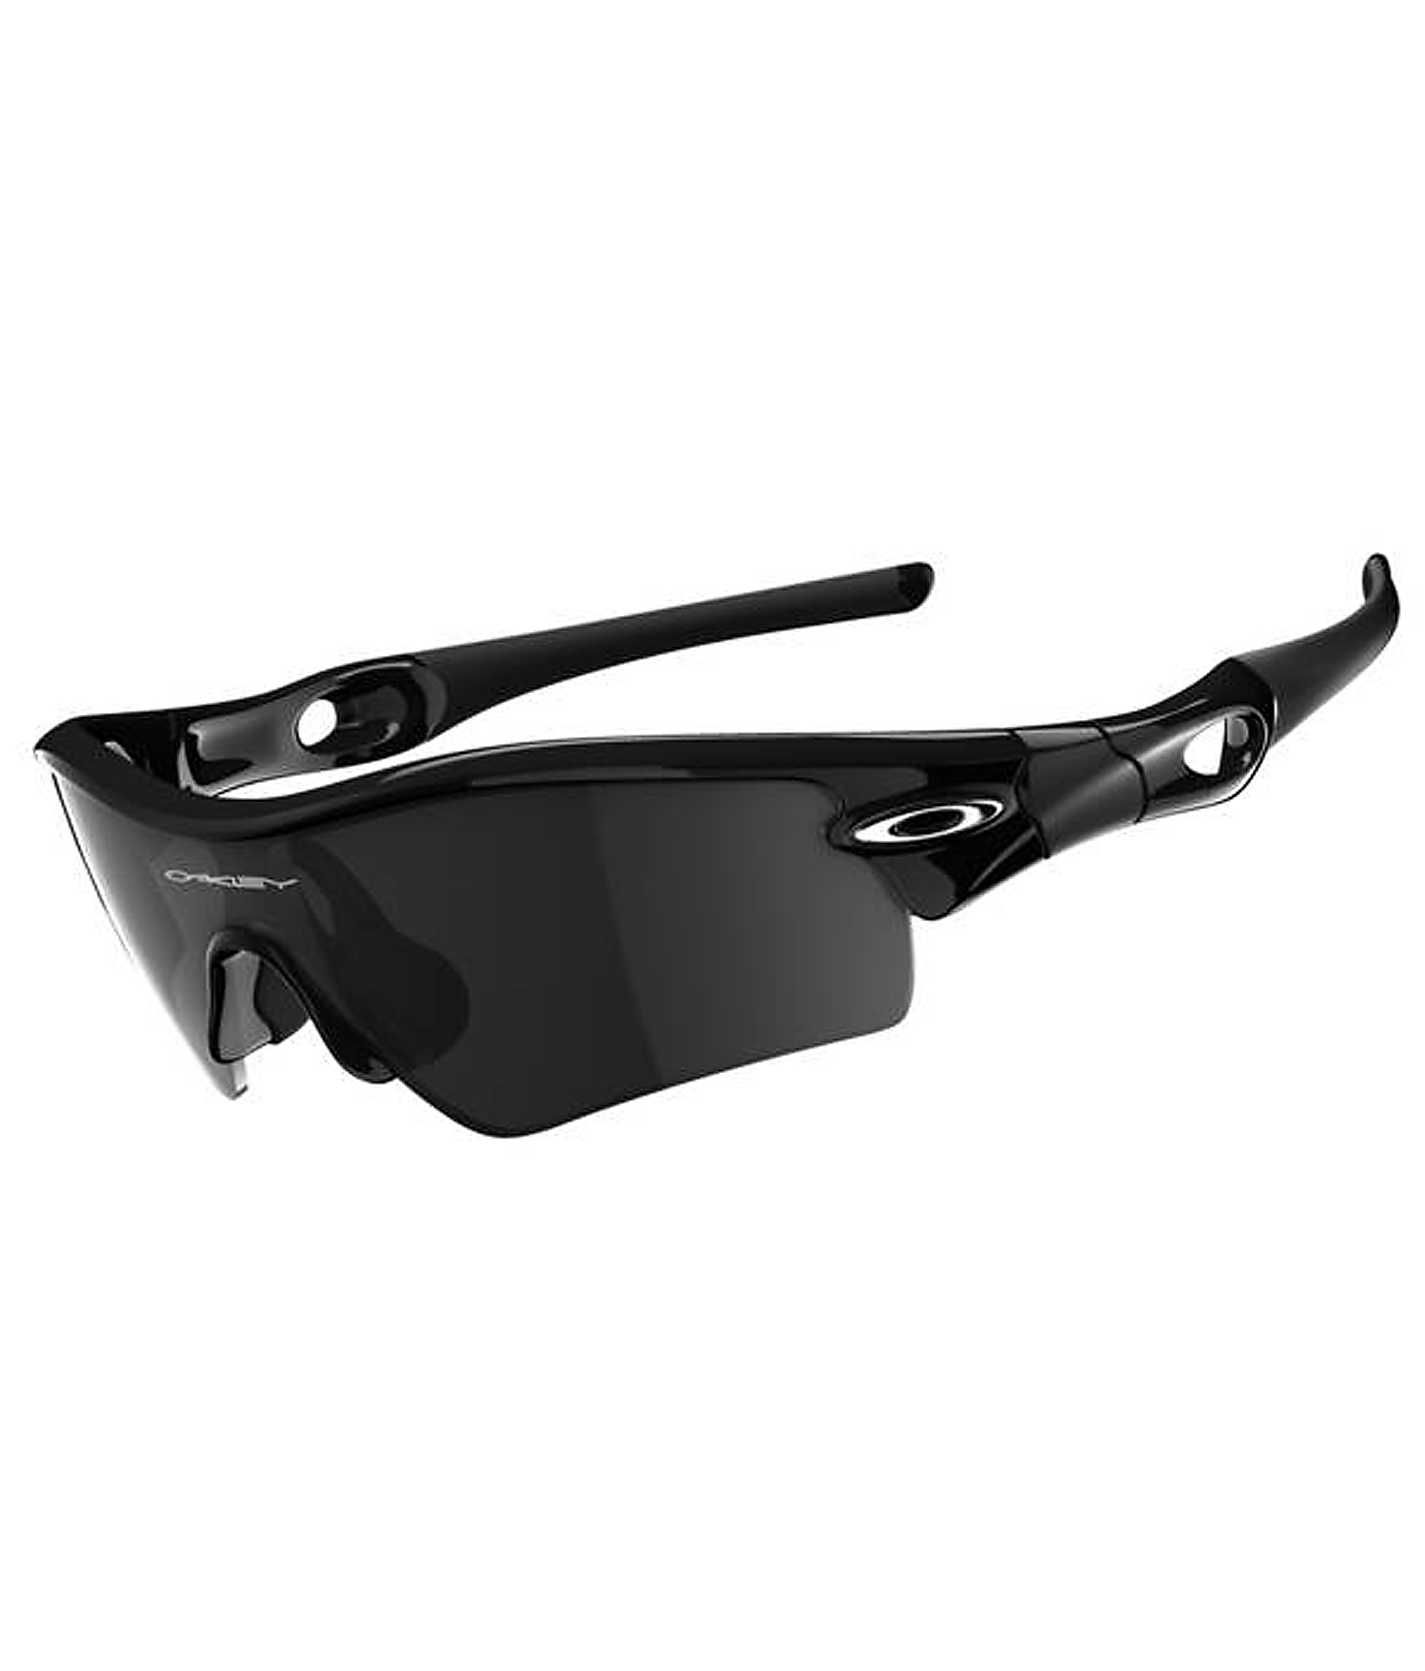 Oakley Radar Path Sunglasses - Men's Accessories